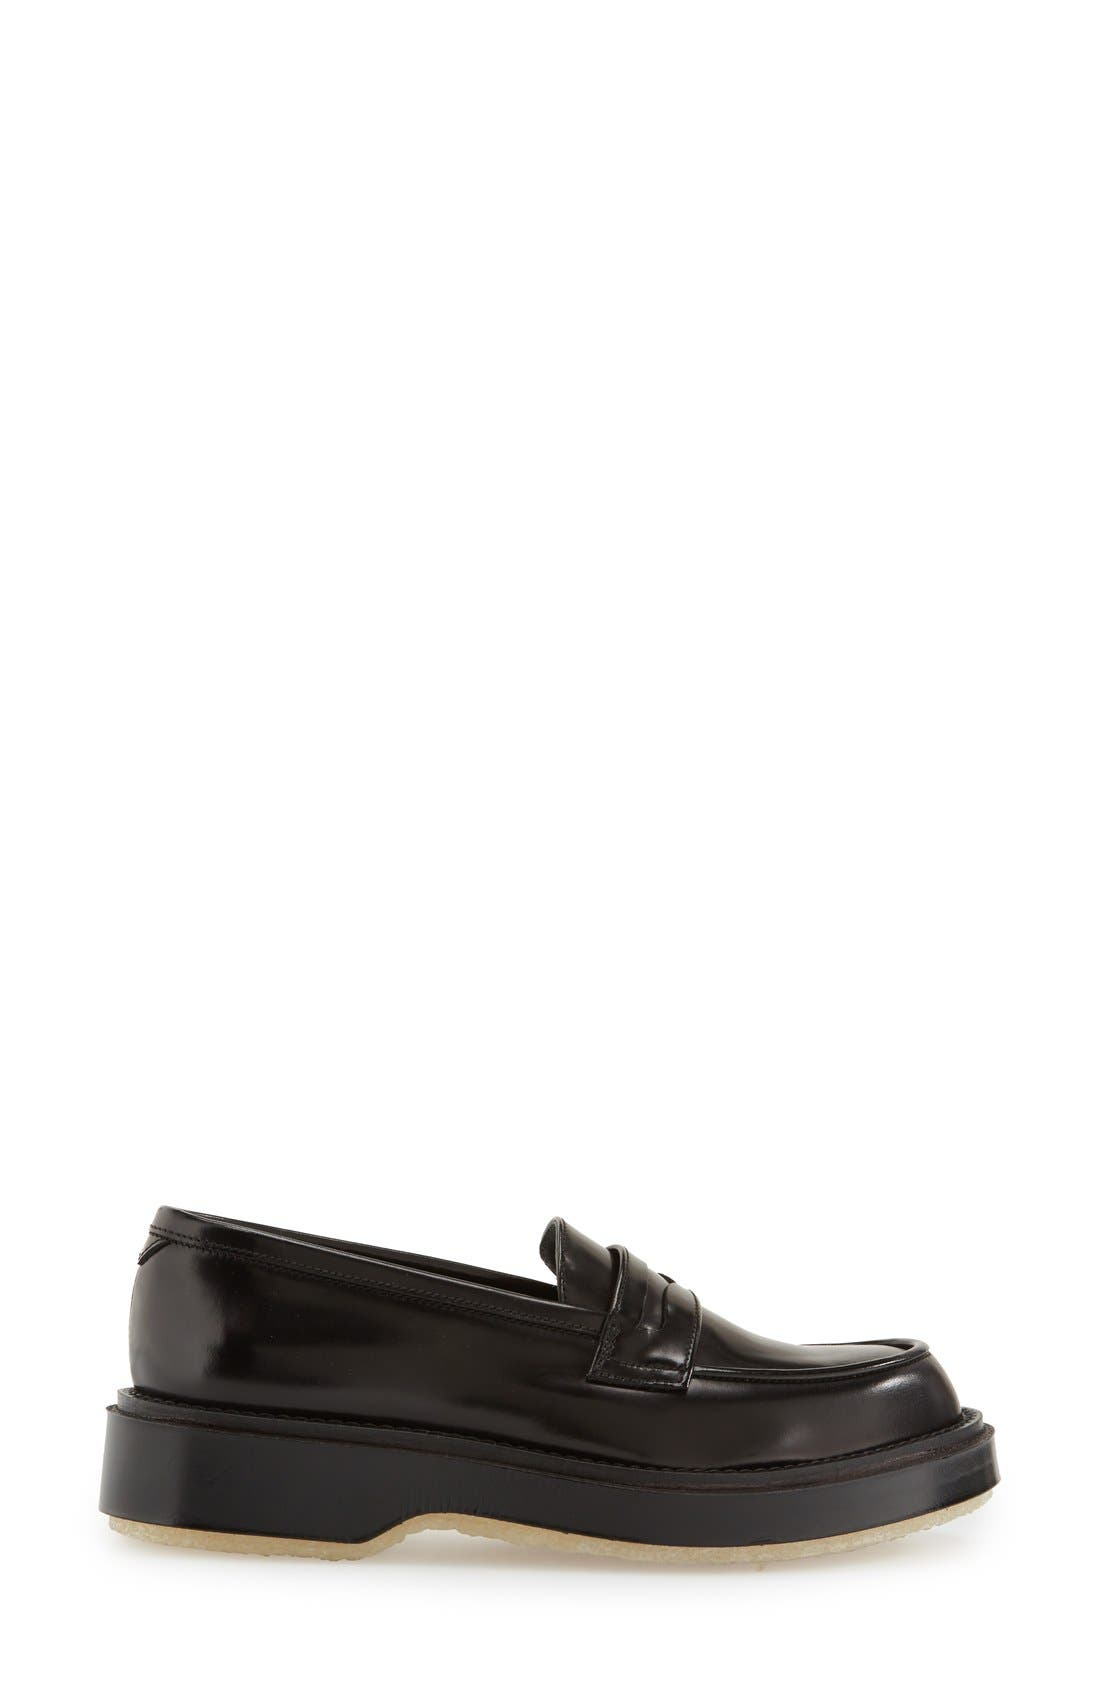 Alternate Image 4  - Adieu Calfskin Leather Penny Loafer (Women)